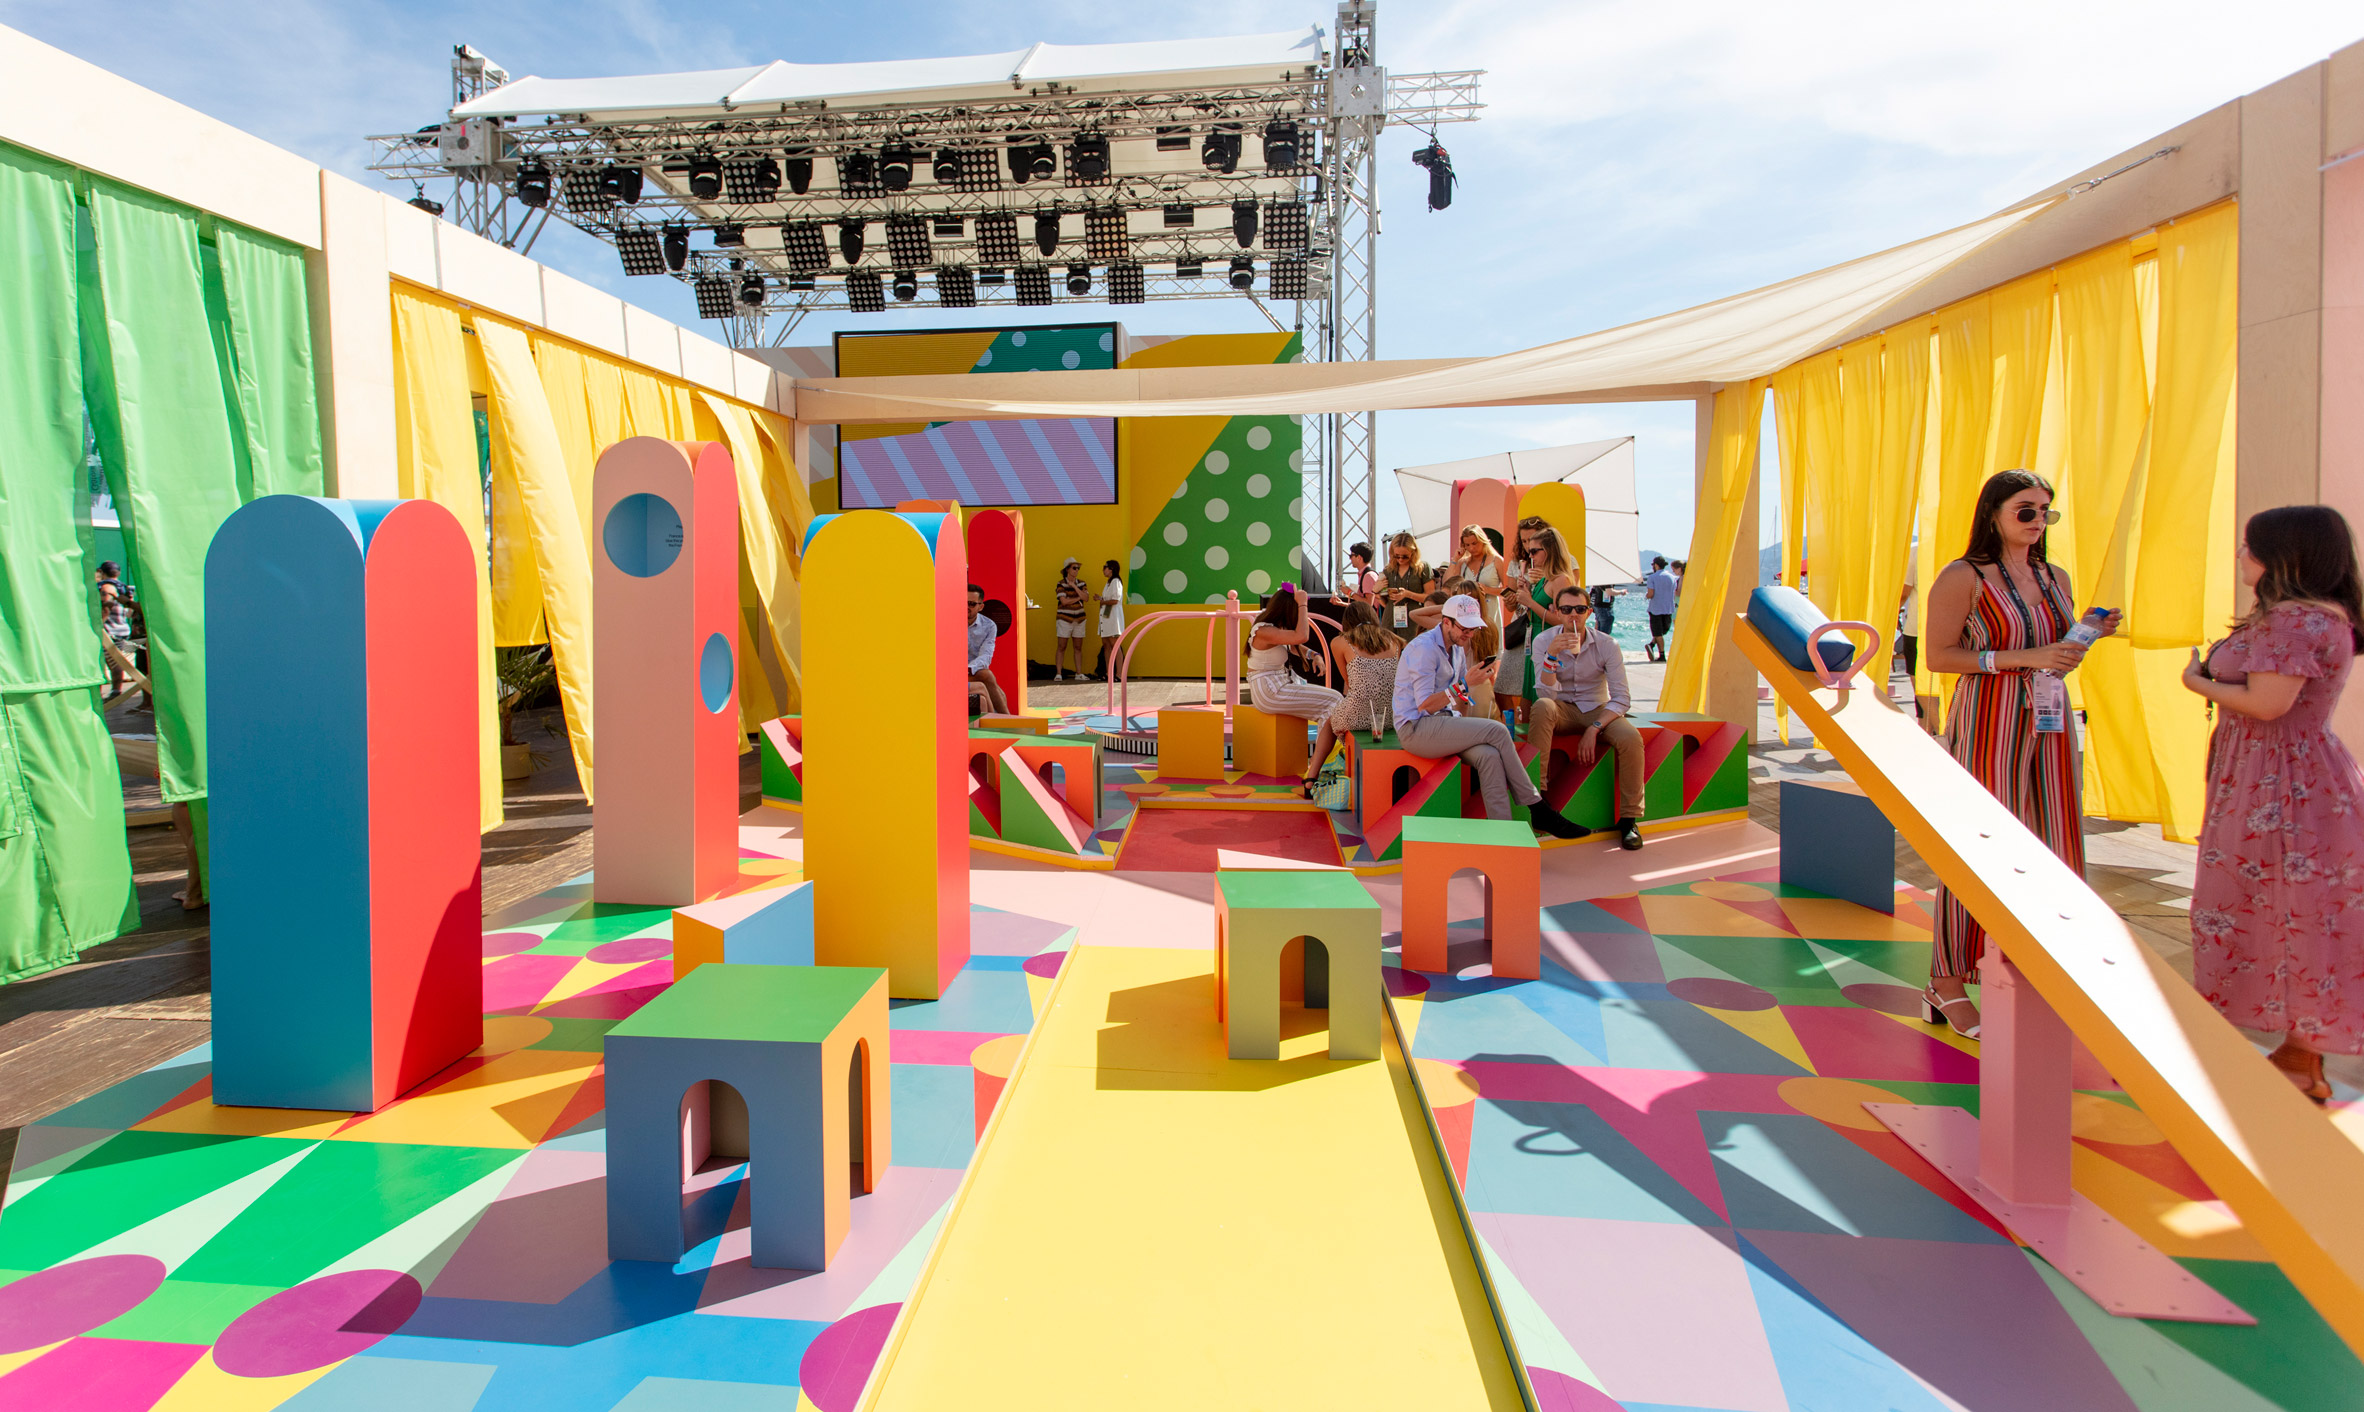 Pinterest's Playground at Cannes Lions by Yinka Ilori.